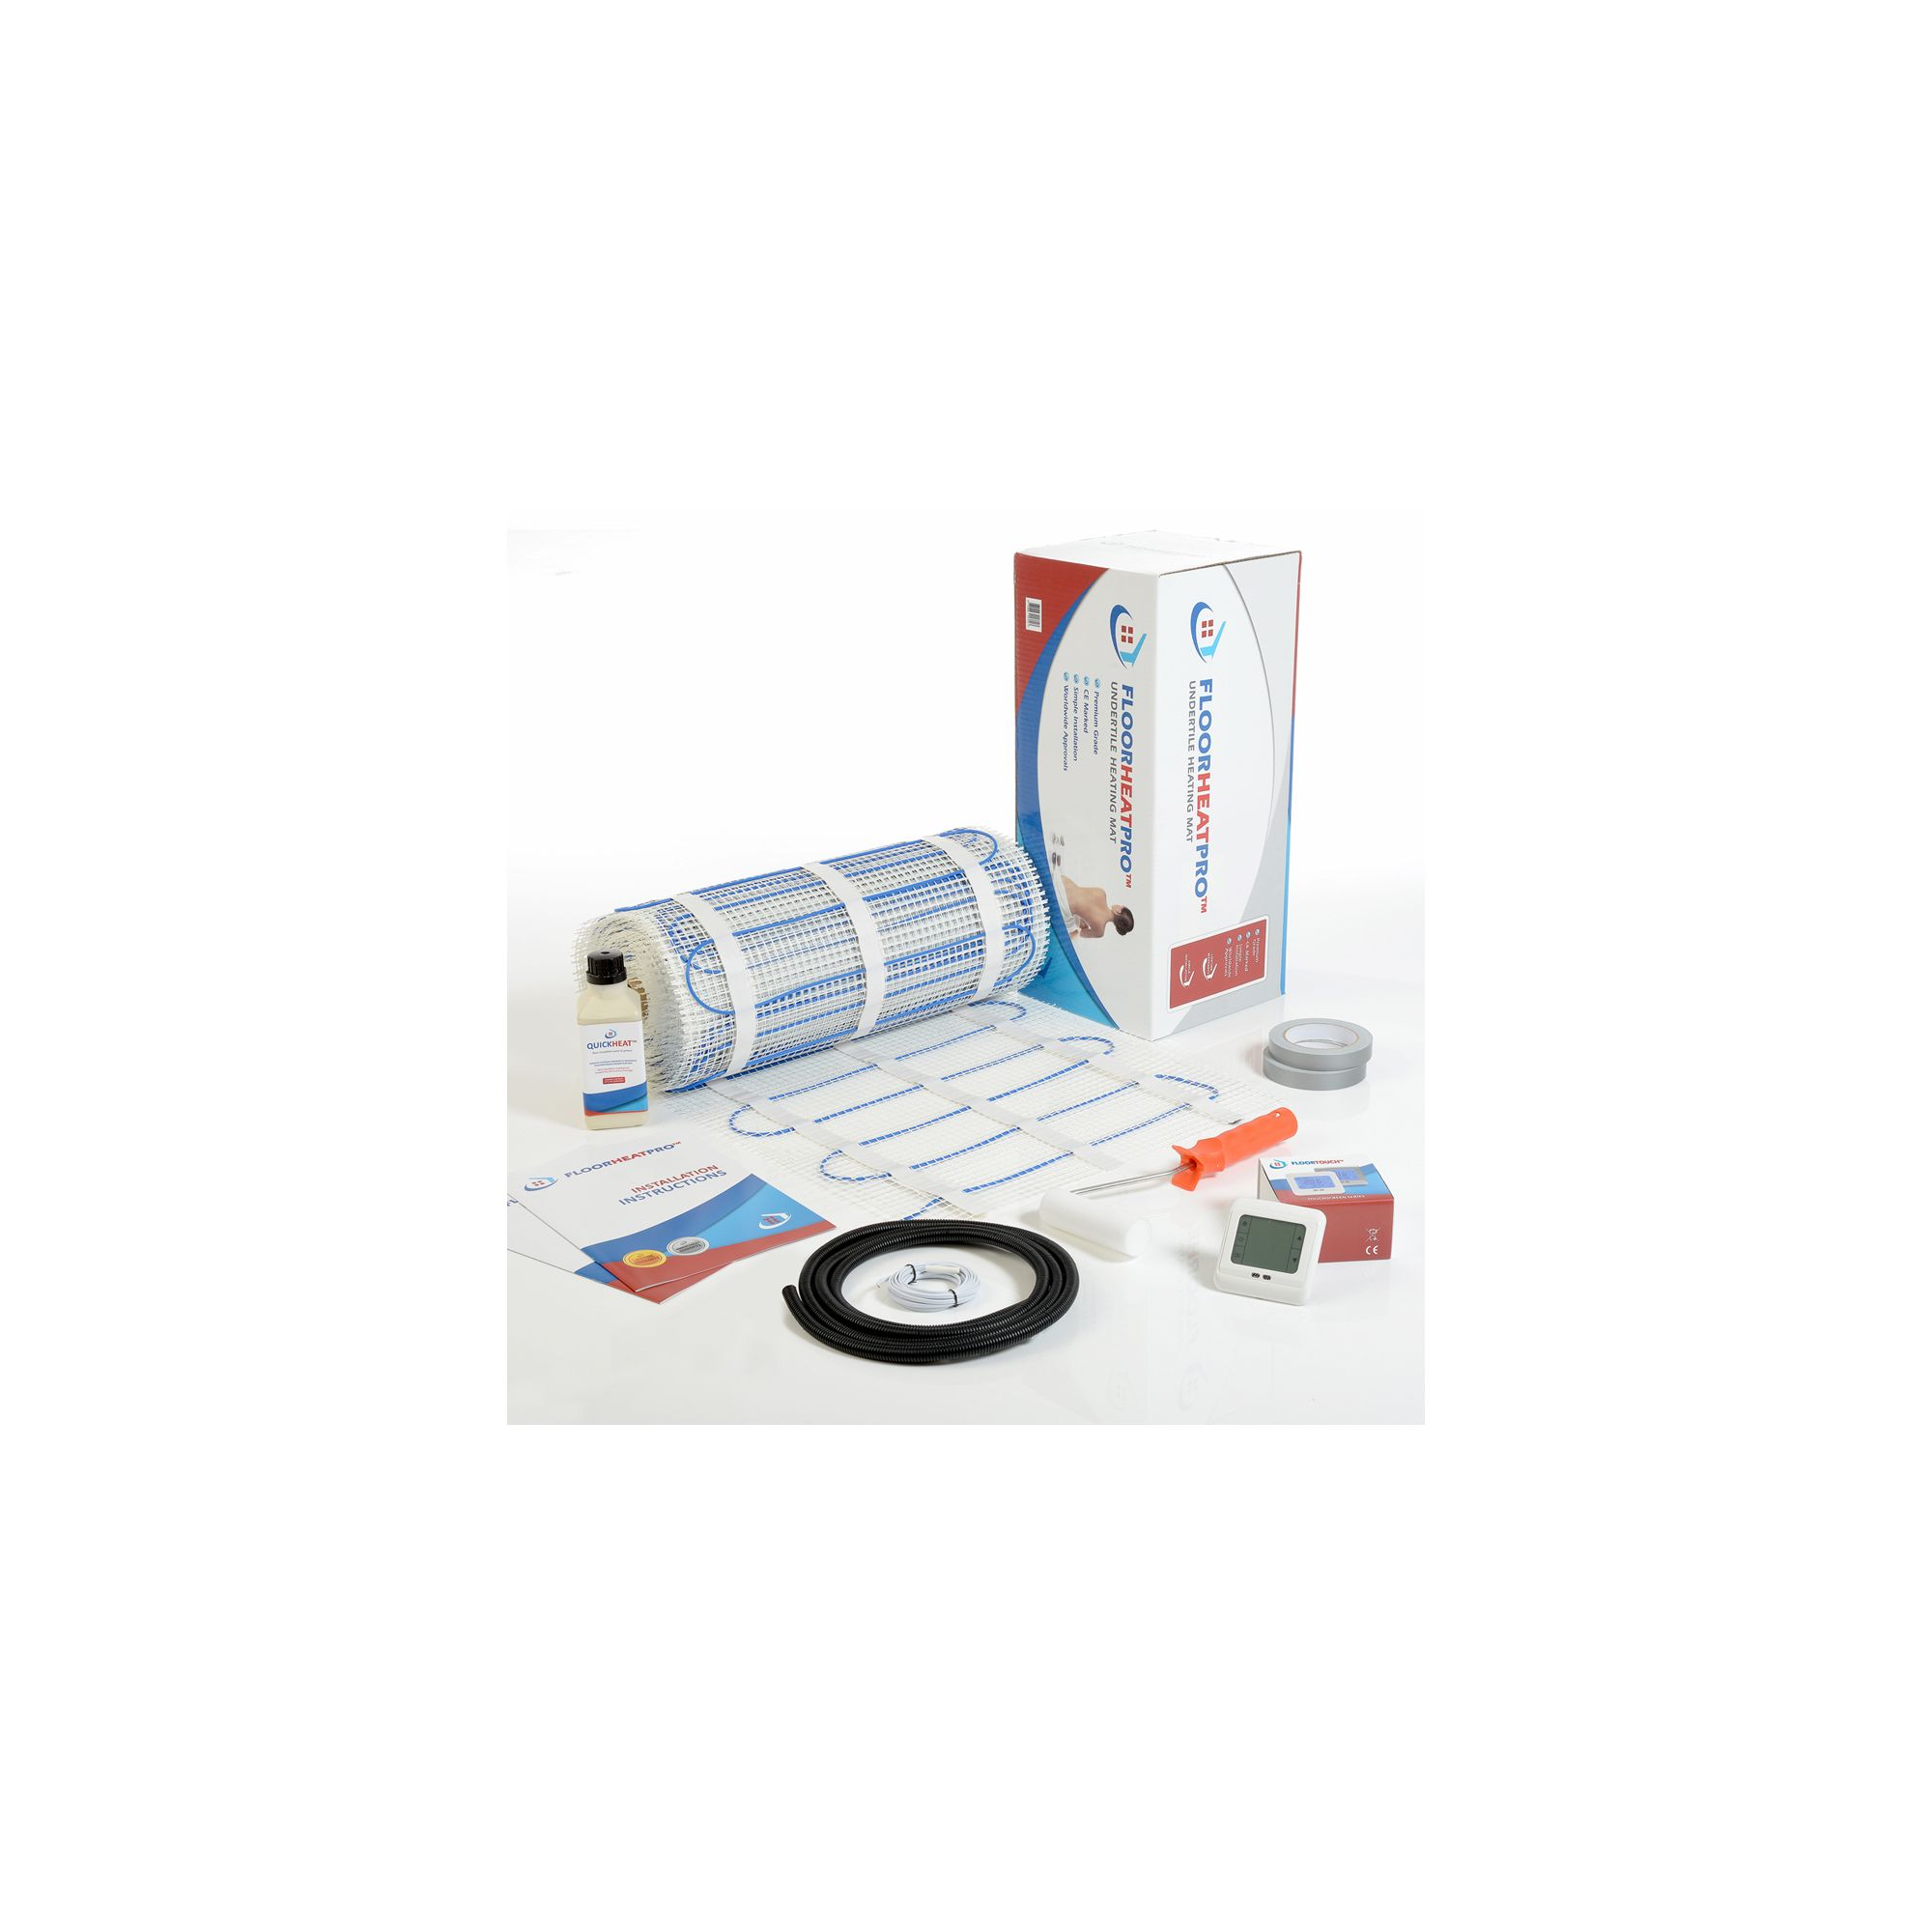 23.0m2 - Underfloor Electric Heating Kit 150w/m2 - Tiles at Tesco Direct